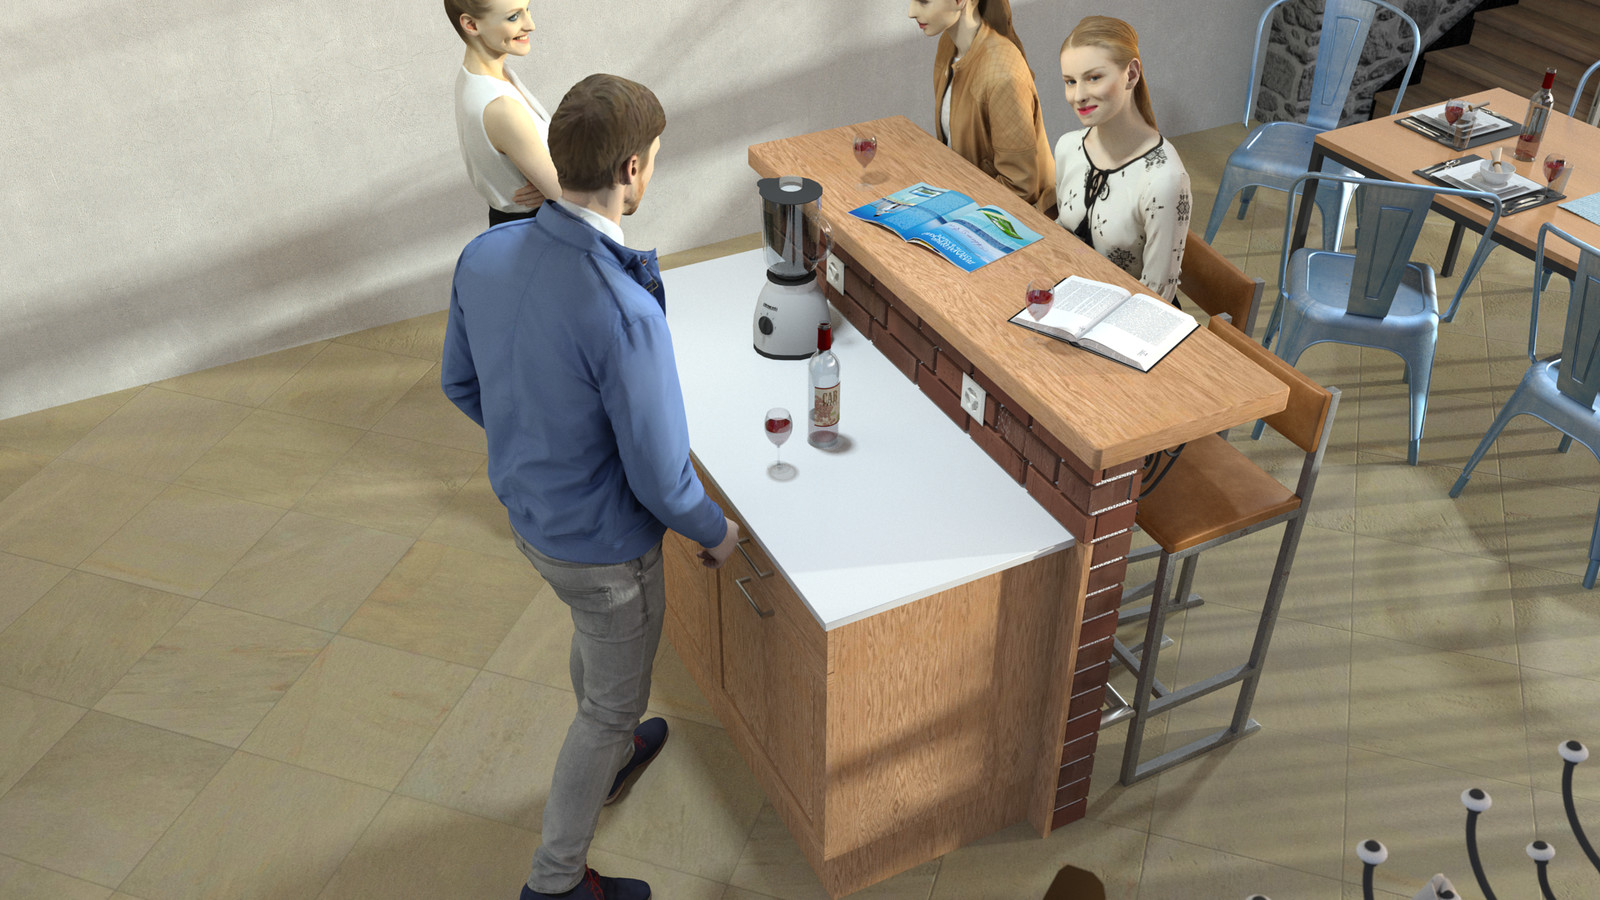 SketchUp + Thea Render  Rivendell Mill's Kitchen Bar Rivendell Brick Bar 2017-Scene 014  The 3d people are from AXYZ design collections found here: Collection 30 : http://bit.ly/2kS8pHx Collection 31 : http://bit.ly/2lJSkFu